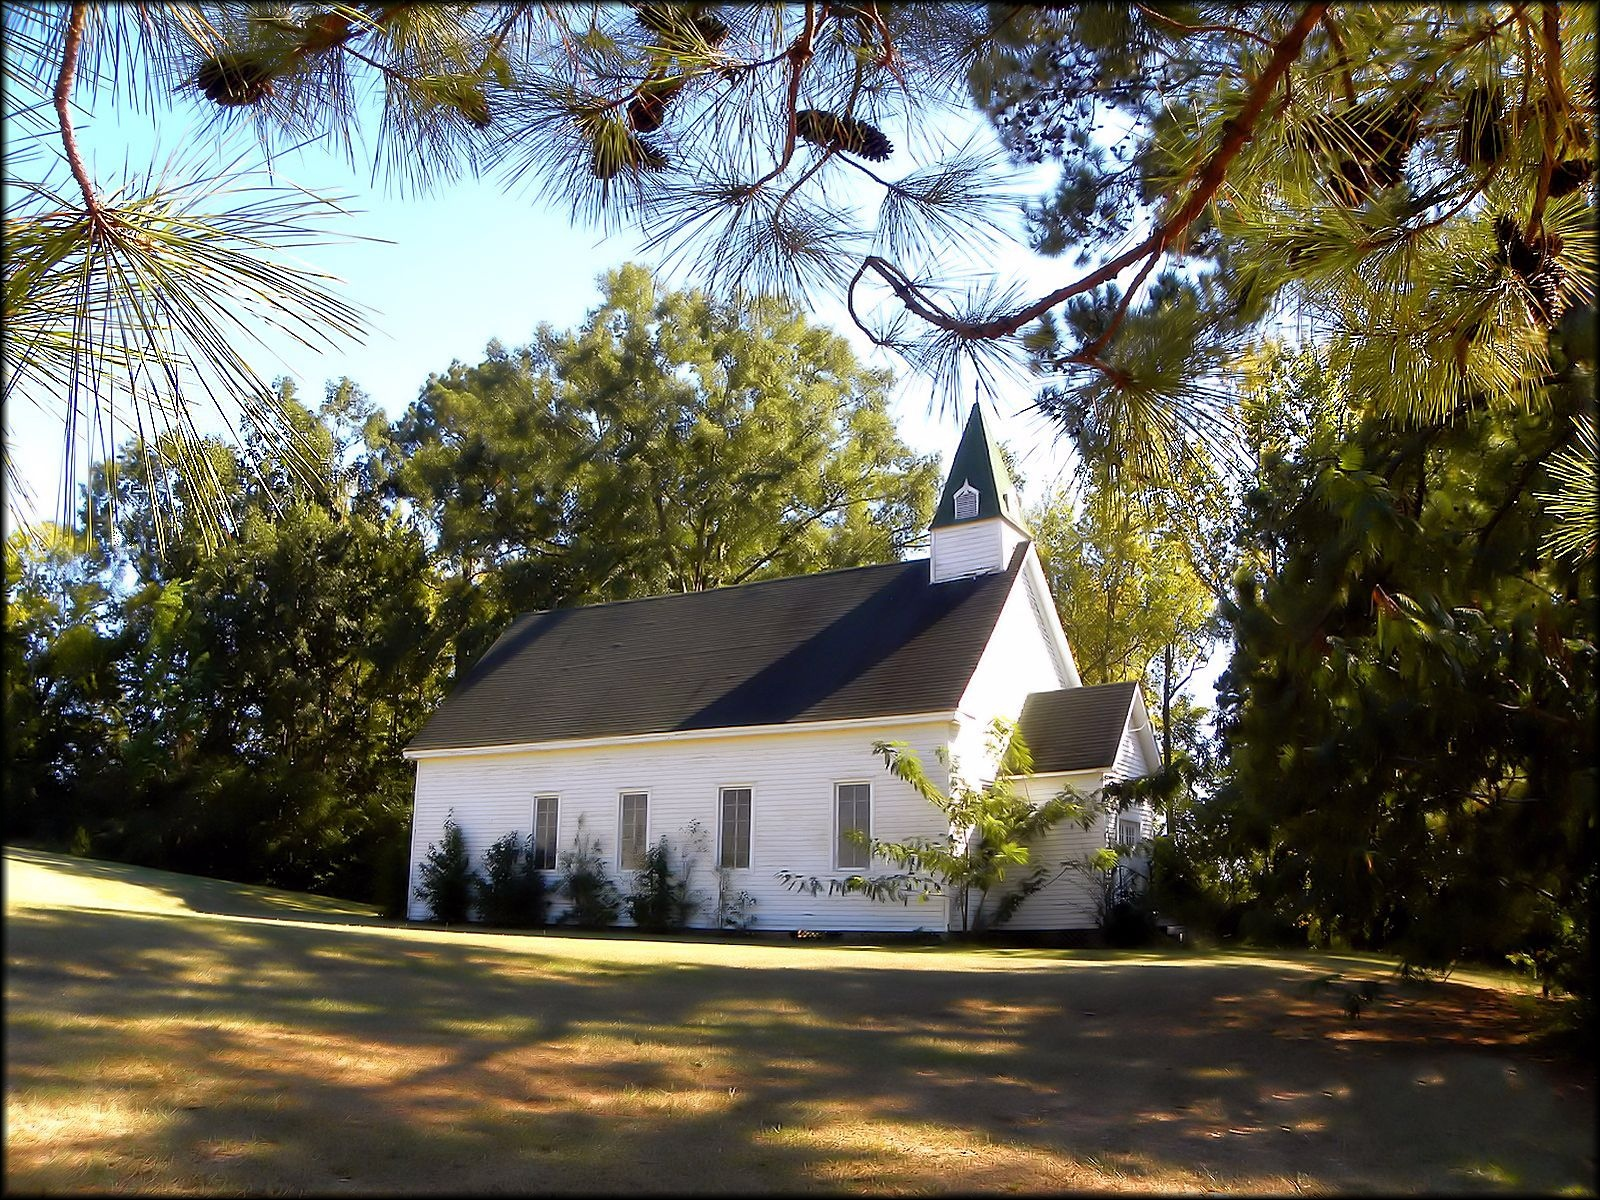 The Old Baptist Church of Chireno, Texas